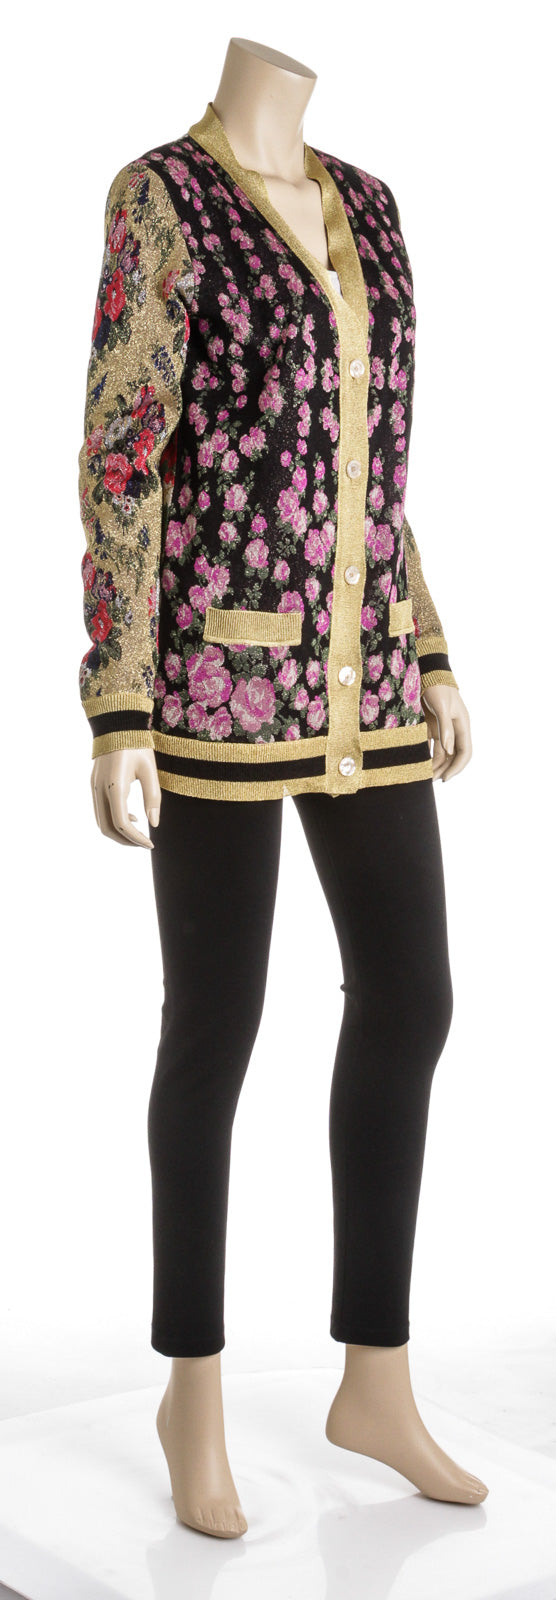 Gucci Patchwork Shiny Jacquard Reversible Cardigan (Size XS)